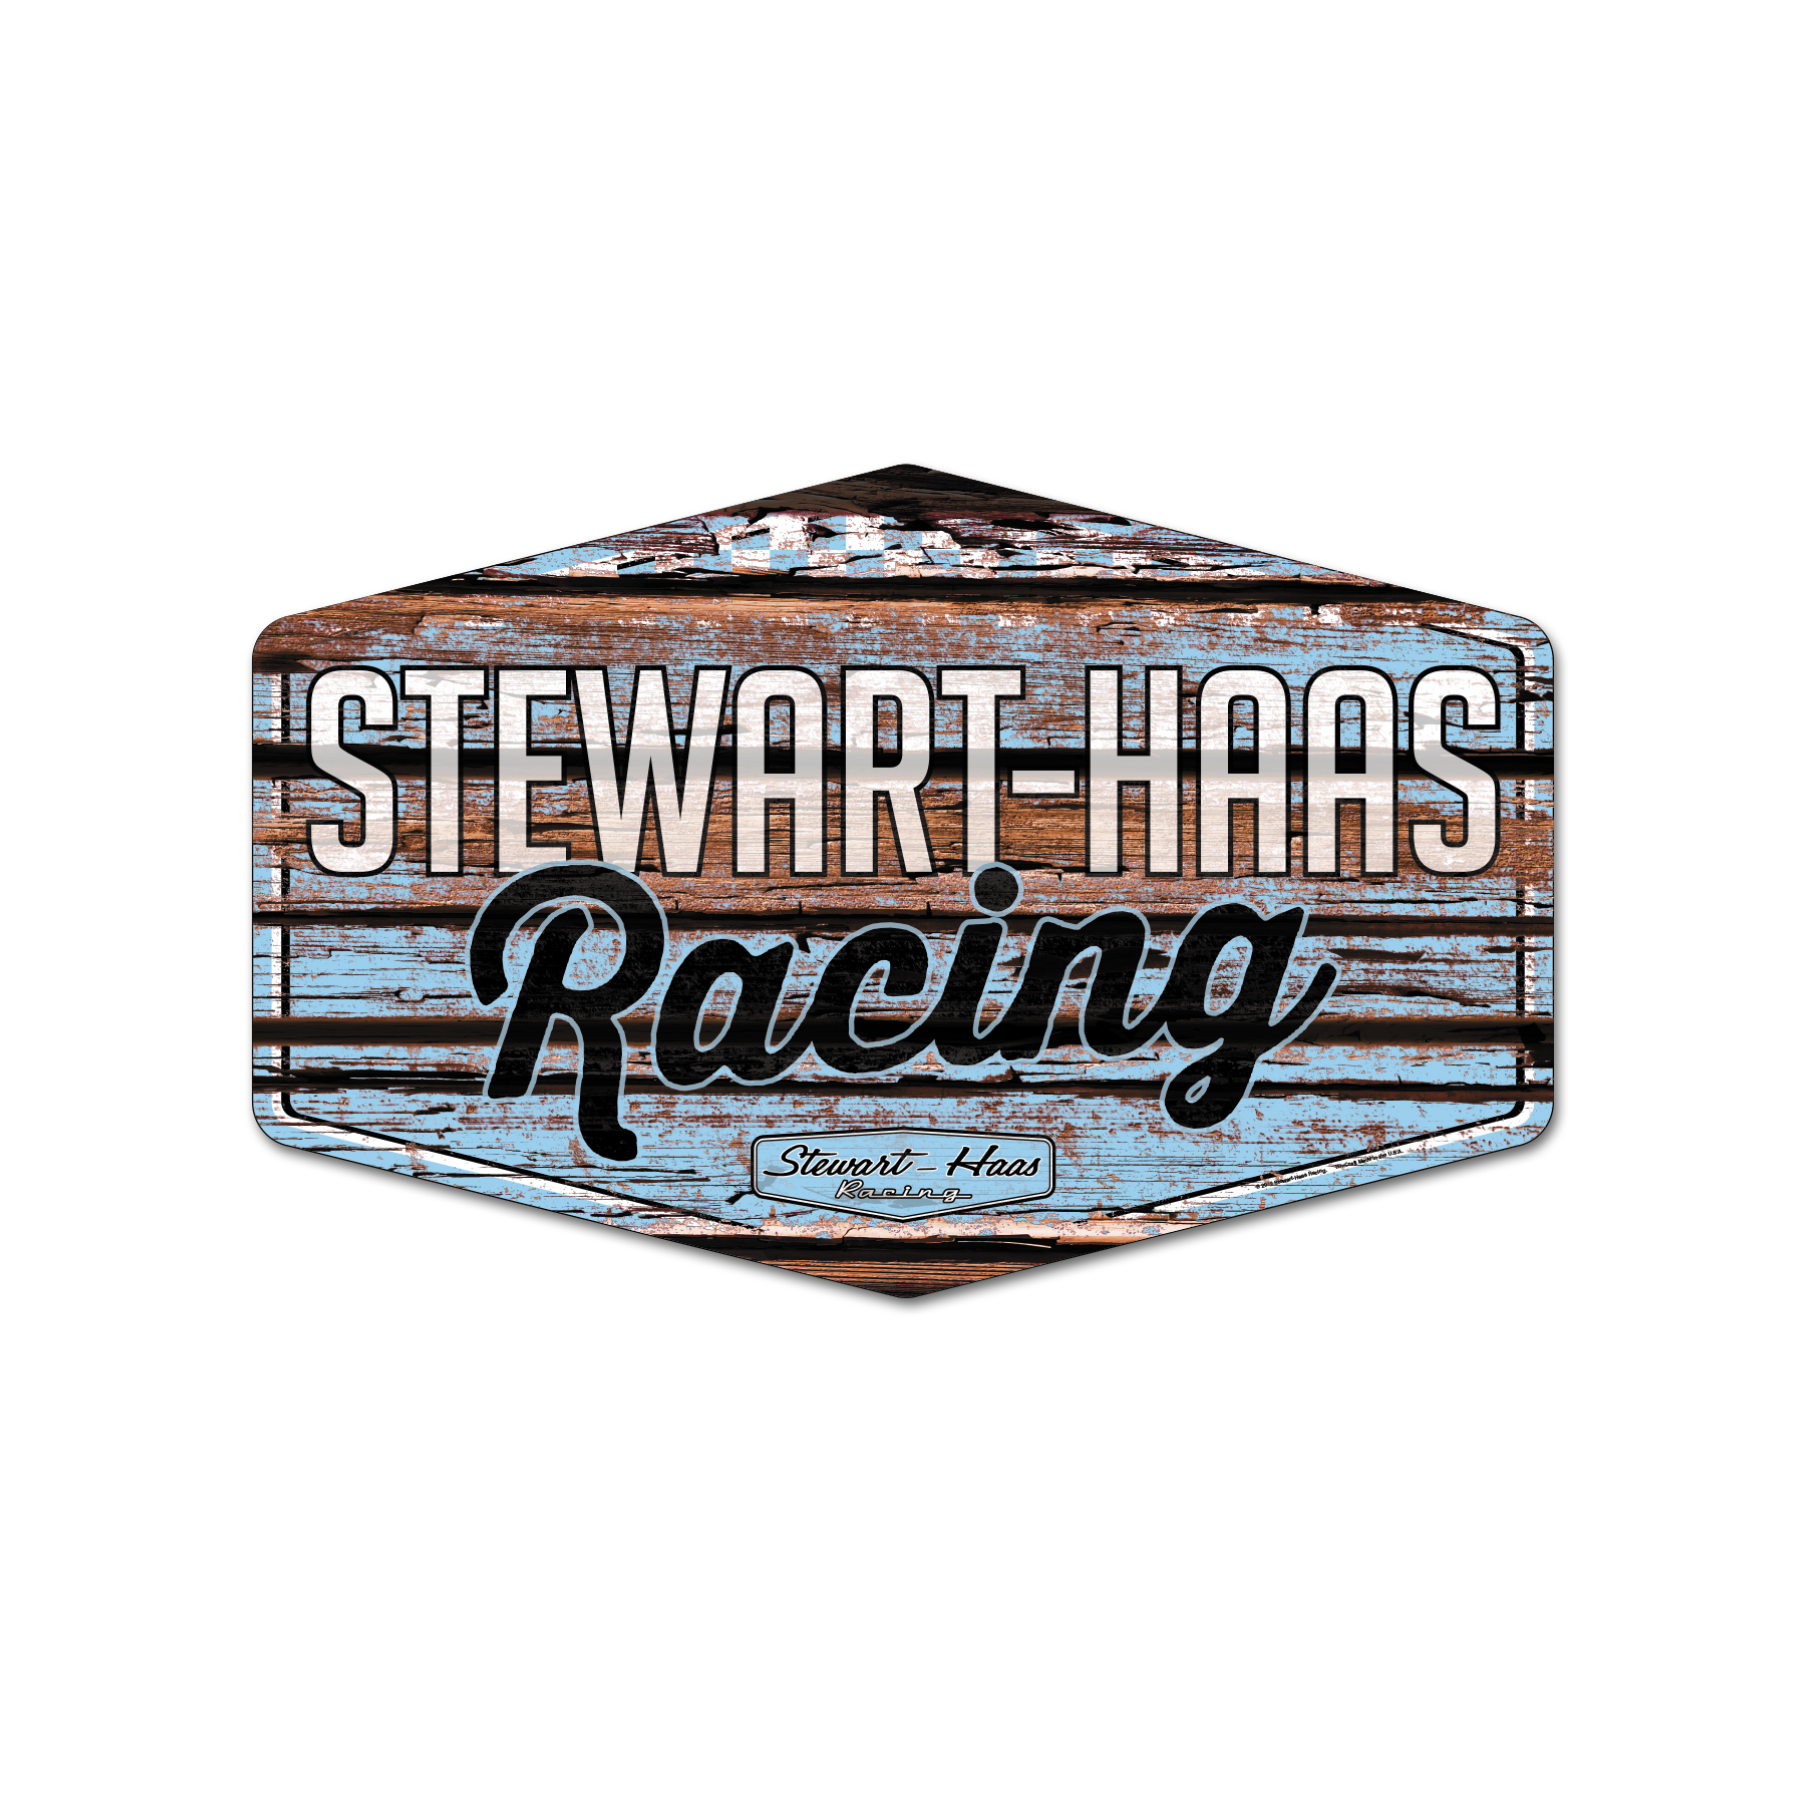 Exclusive Stewart-Haas Racing 11X17 Wooden Sign